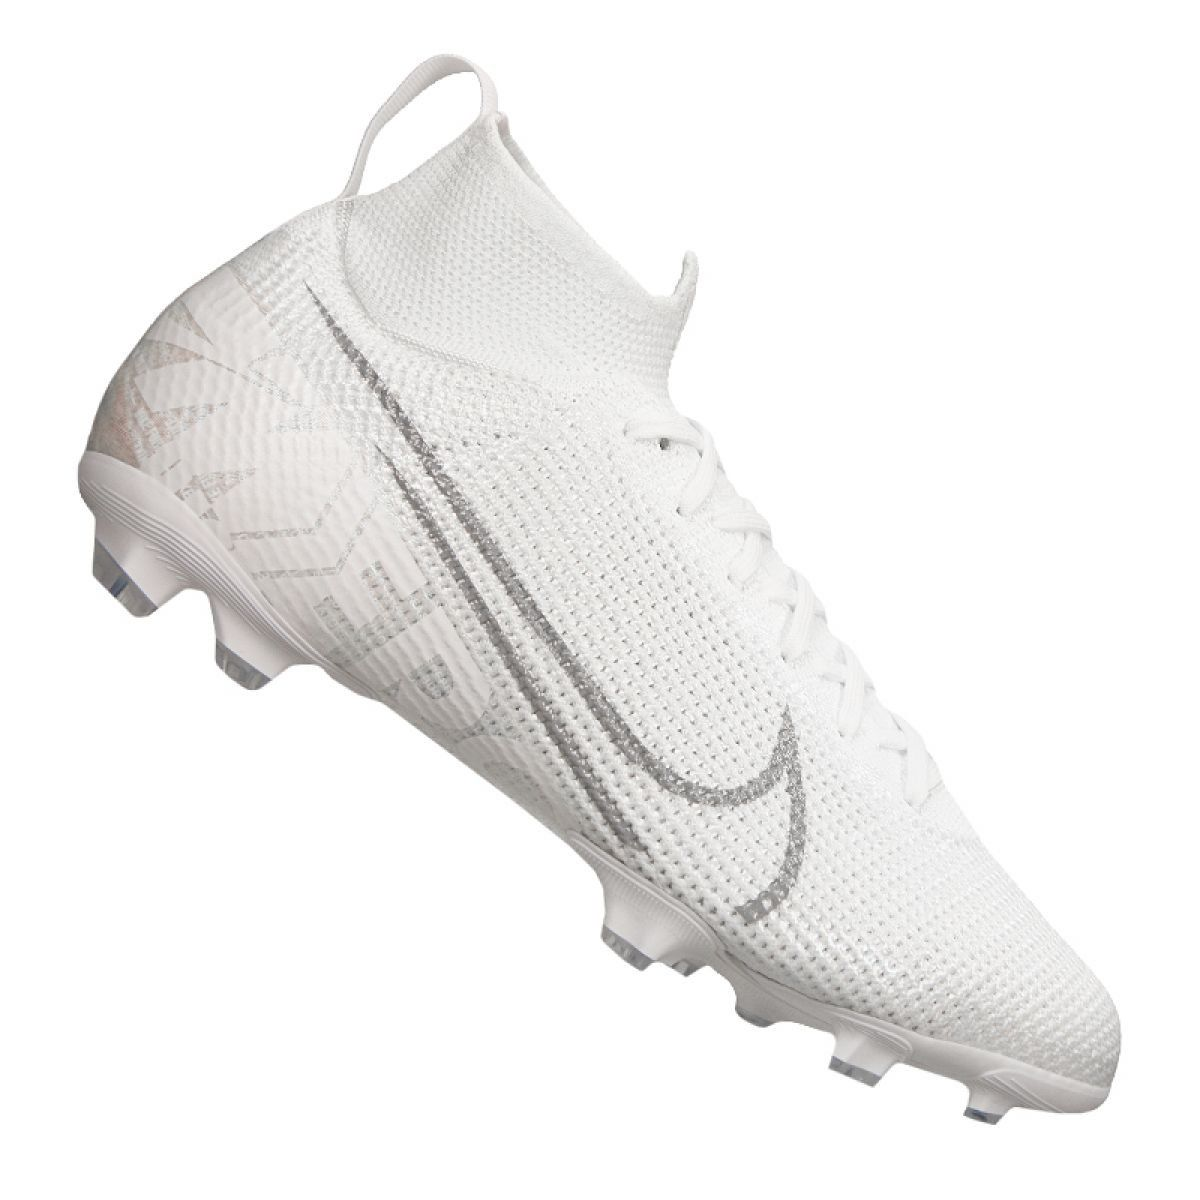 Buty Pilkarskie Nike Superfly 7 Elite Fg Jr At8034 100 Biale Biale Football Shoes Superfly Junior Boots